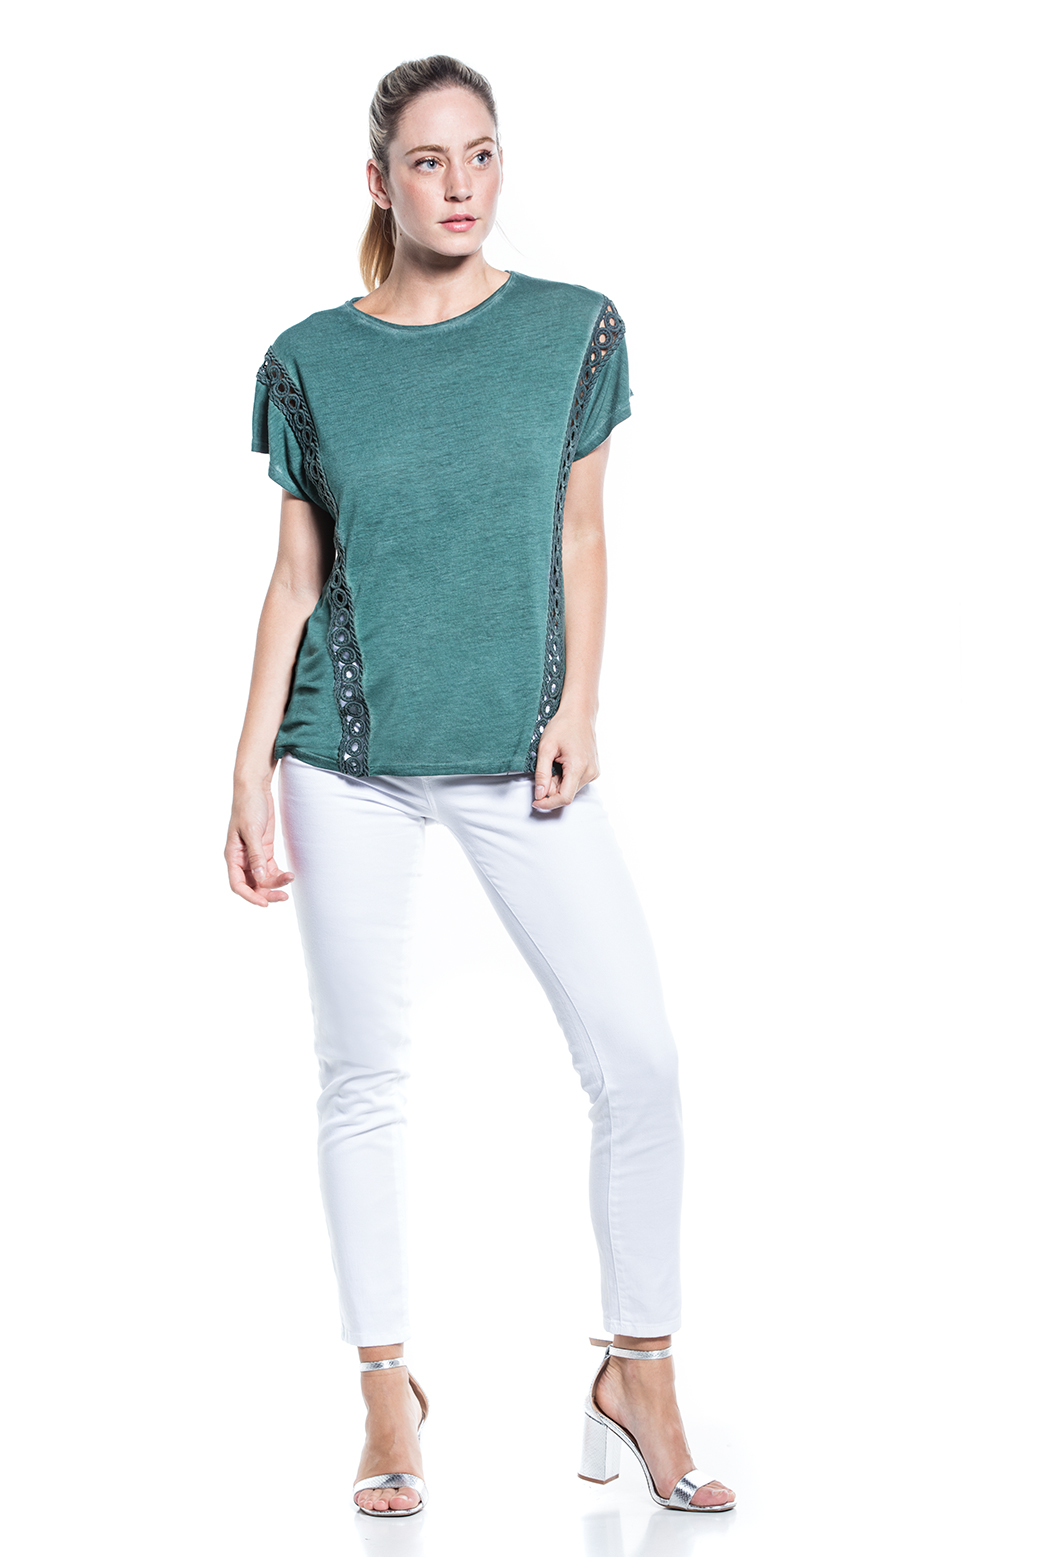 Dyed t-shirt with lace in front